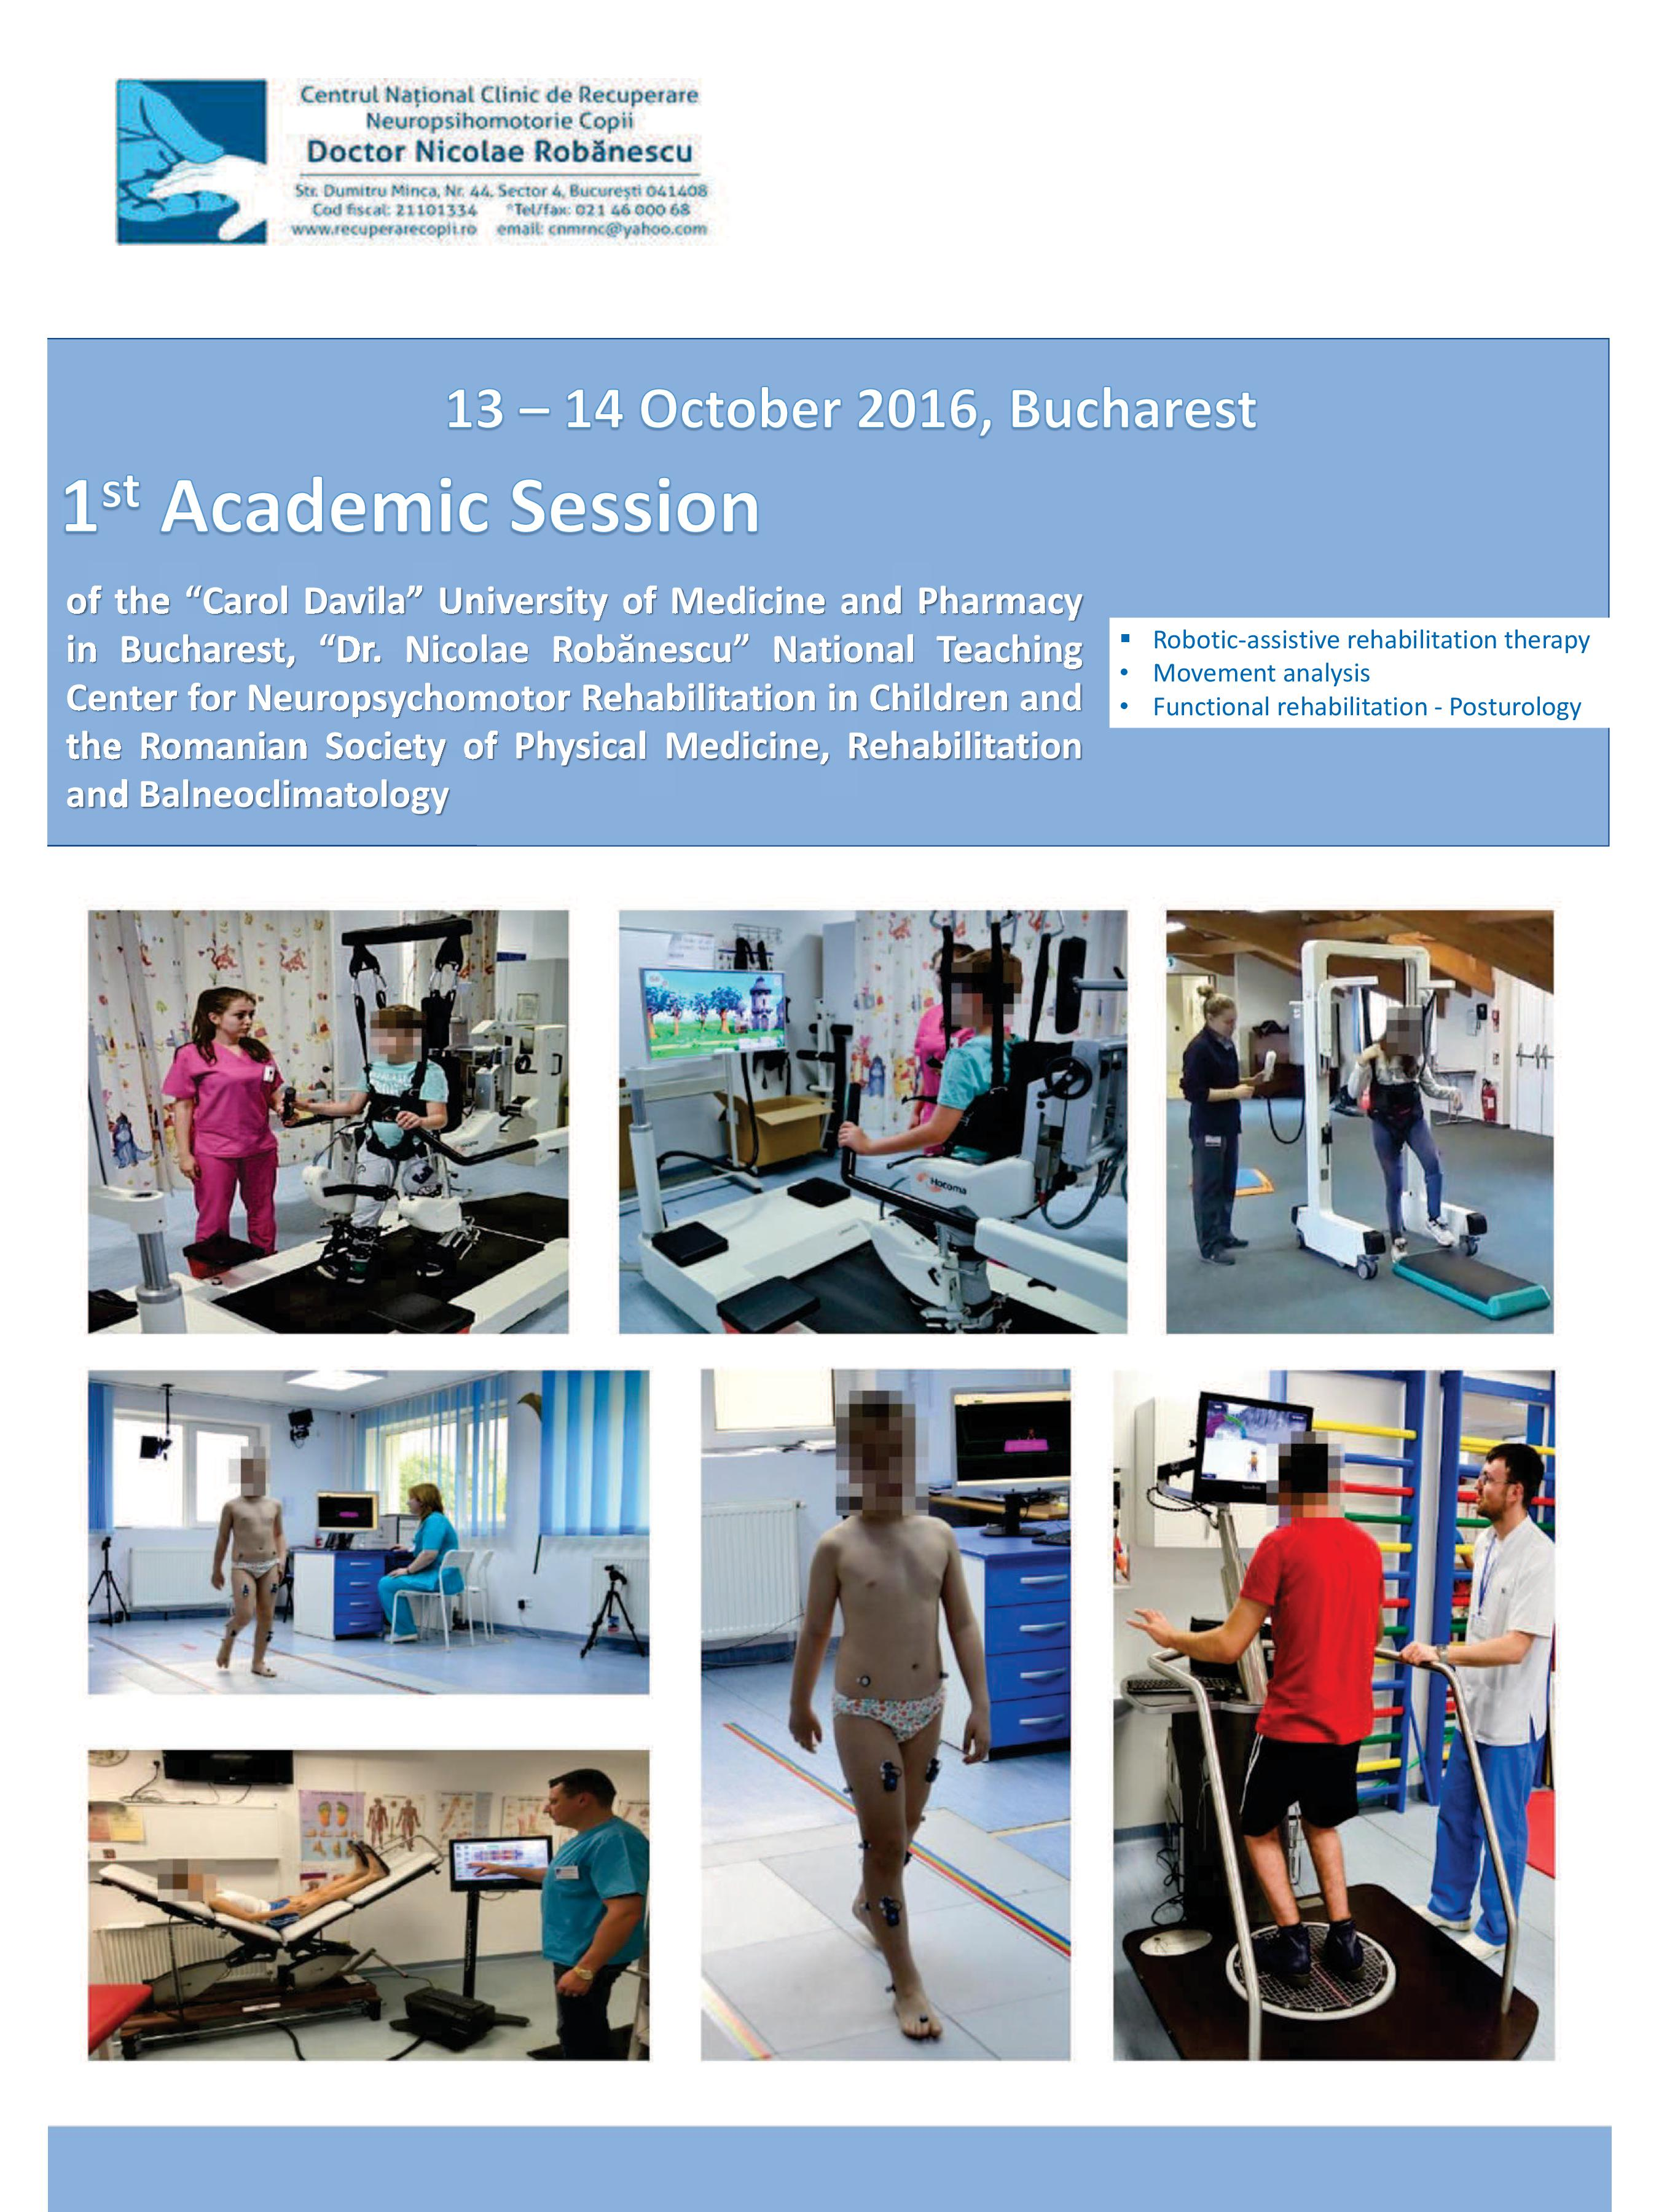 ADVANCED NEUROREHABILITATION PROCEDURES - 1st ACADEMIC SESSION 13-14 October 2016, Bucharest pg1/4